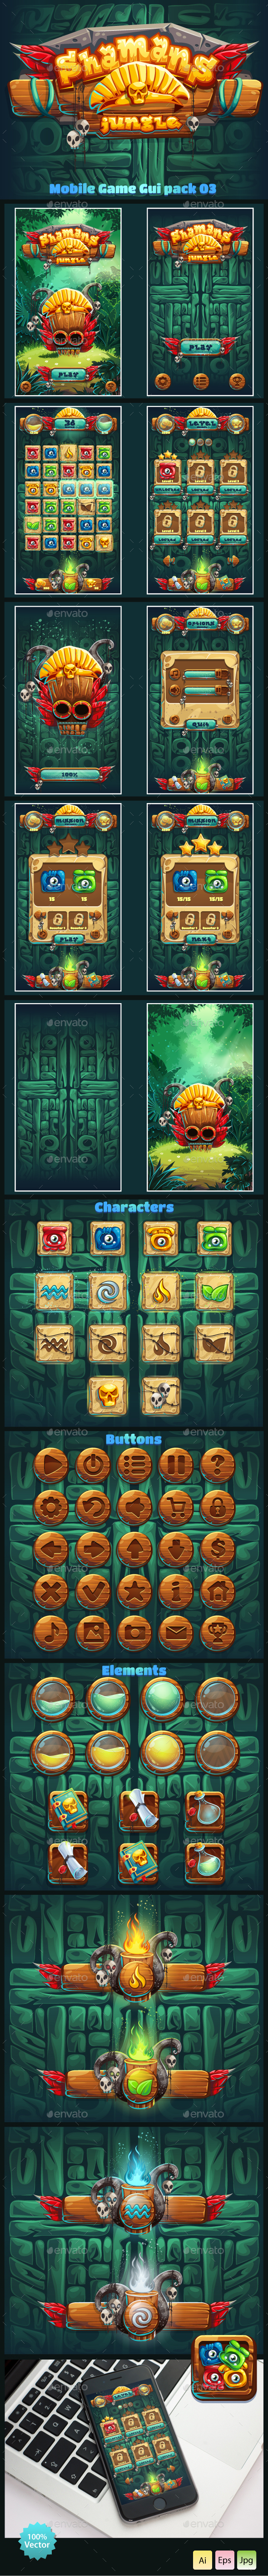 Jungle Shamans Mobile GUI - User Interfaces Game Assets